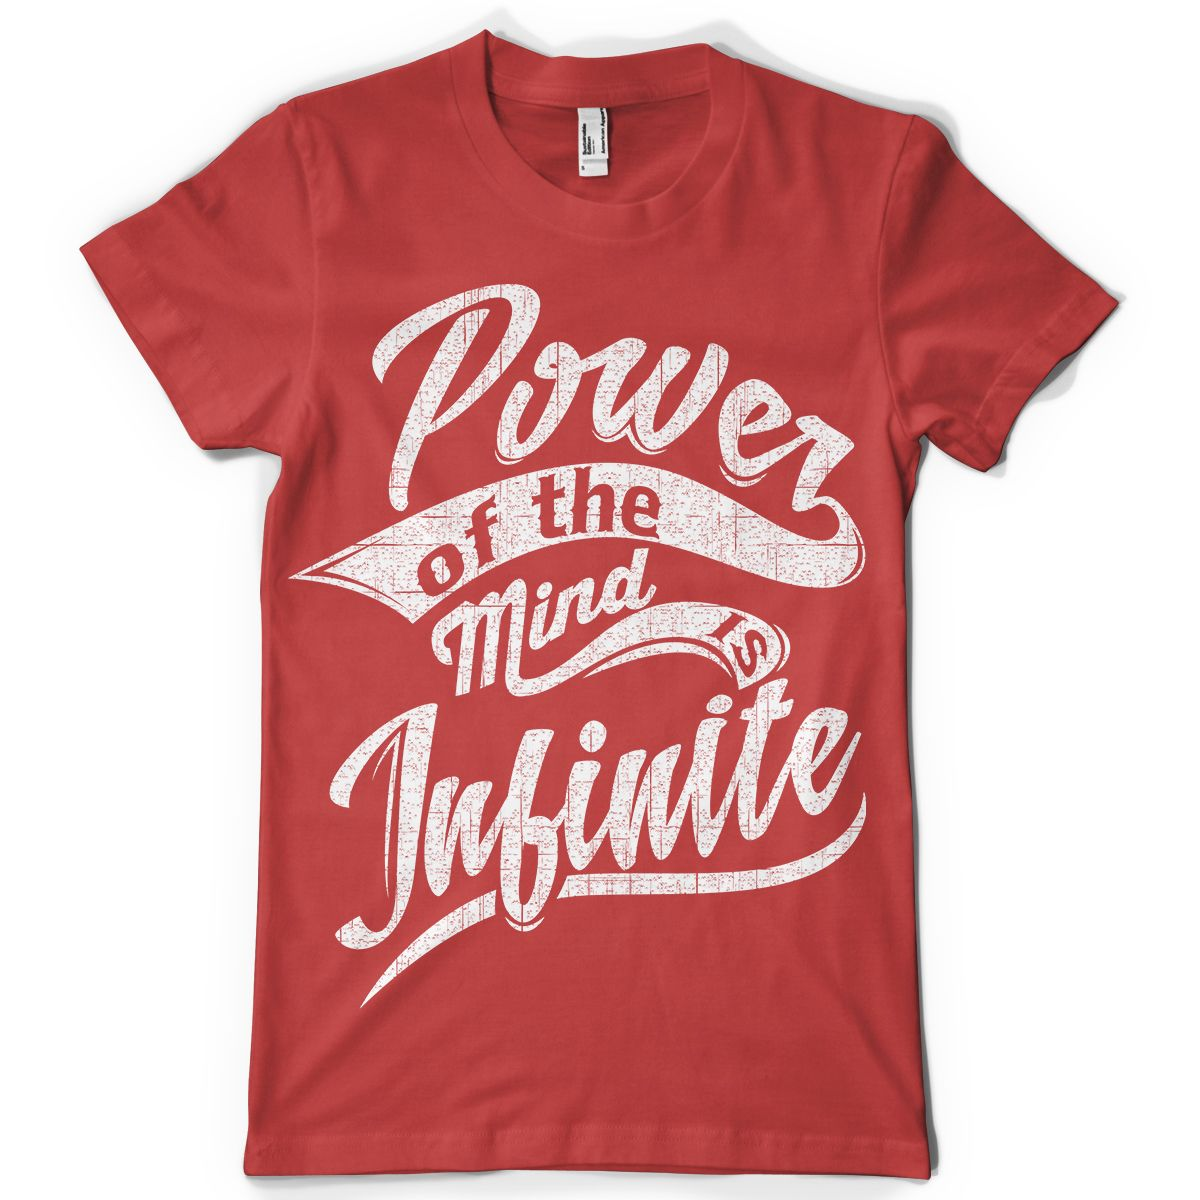 Corel draw vs photoshop for t shirt design - Power T Shirt Design Features A Detailed Screen Print Of Typographic Message Now Available For Adobe Illustrator Adobe Photoshop And Corel Draw And Can Be